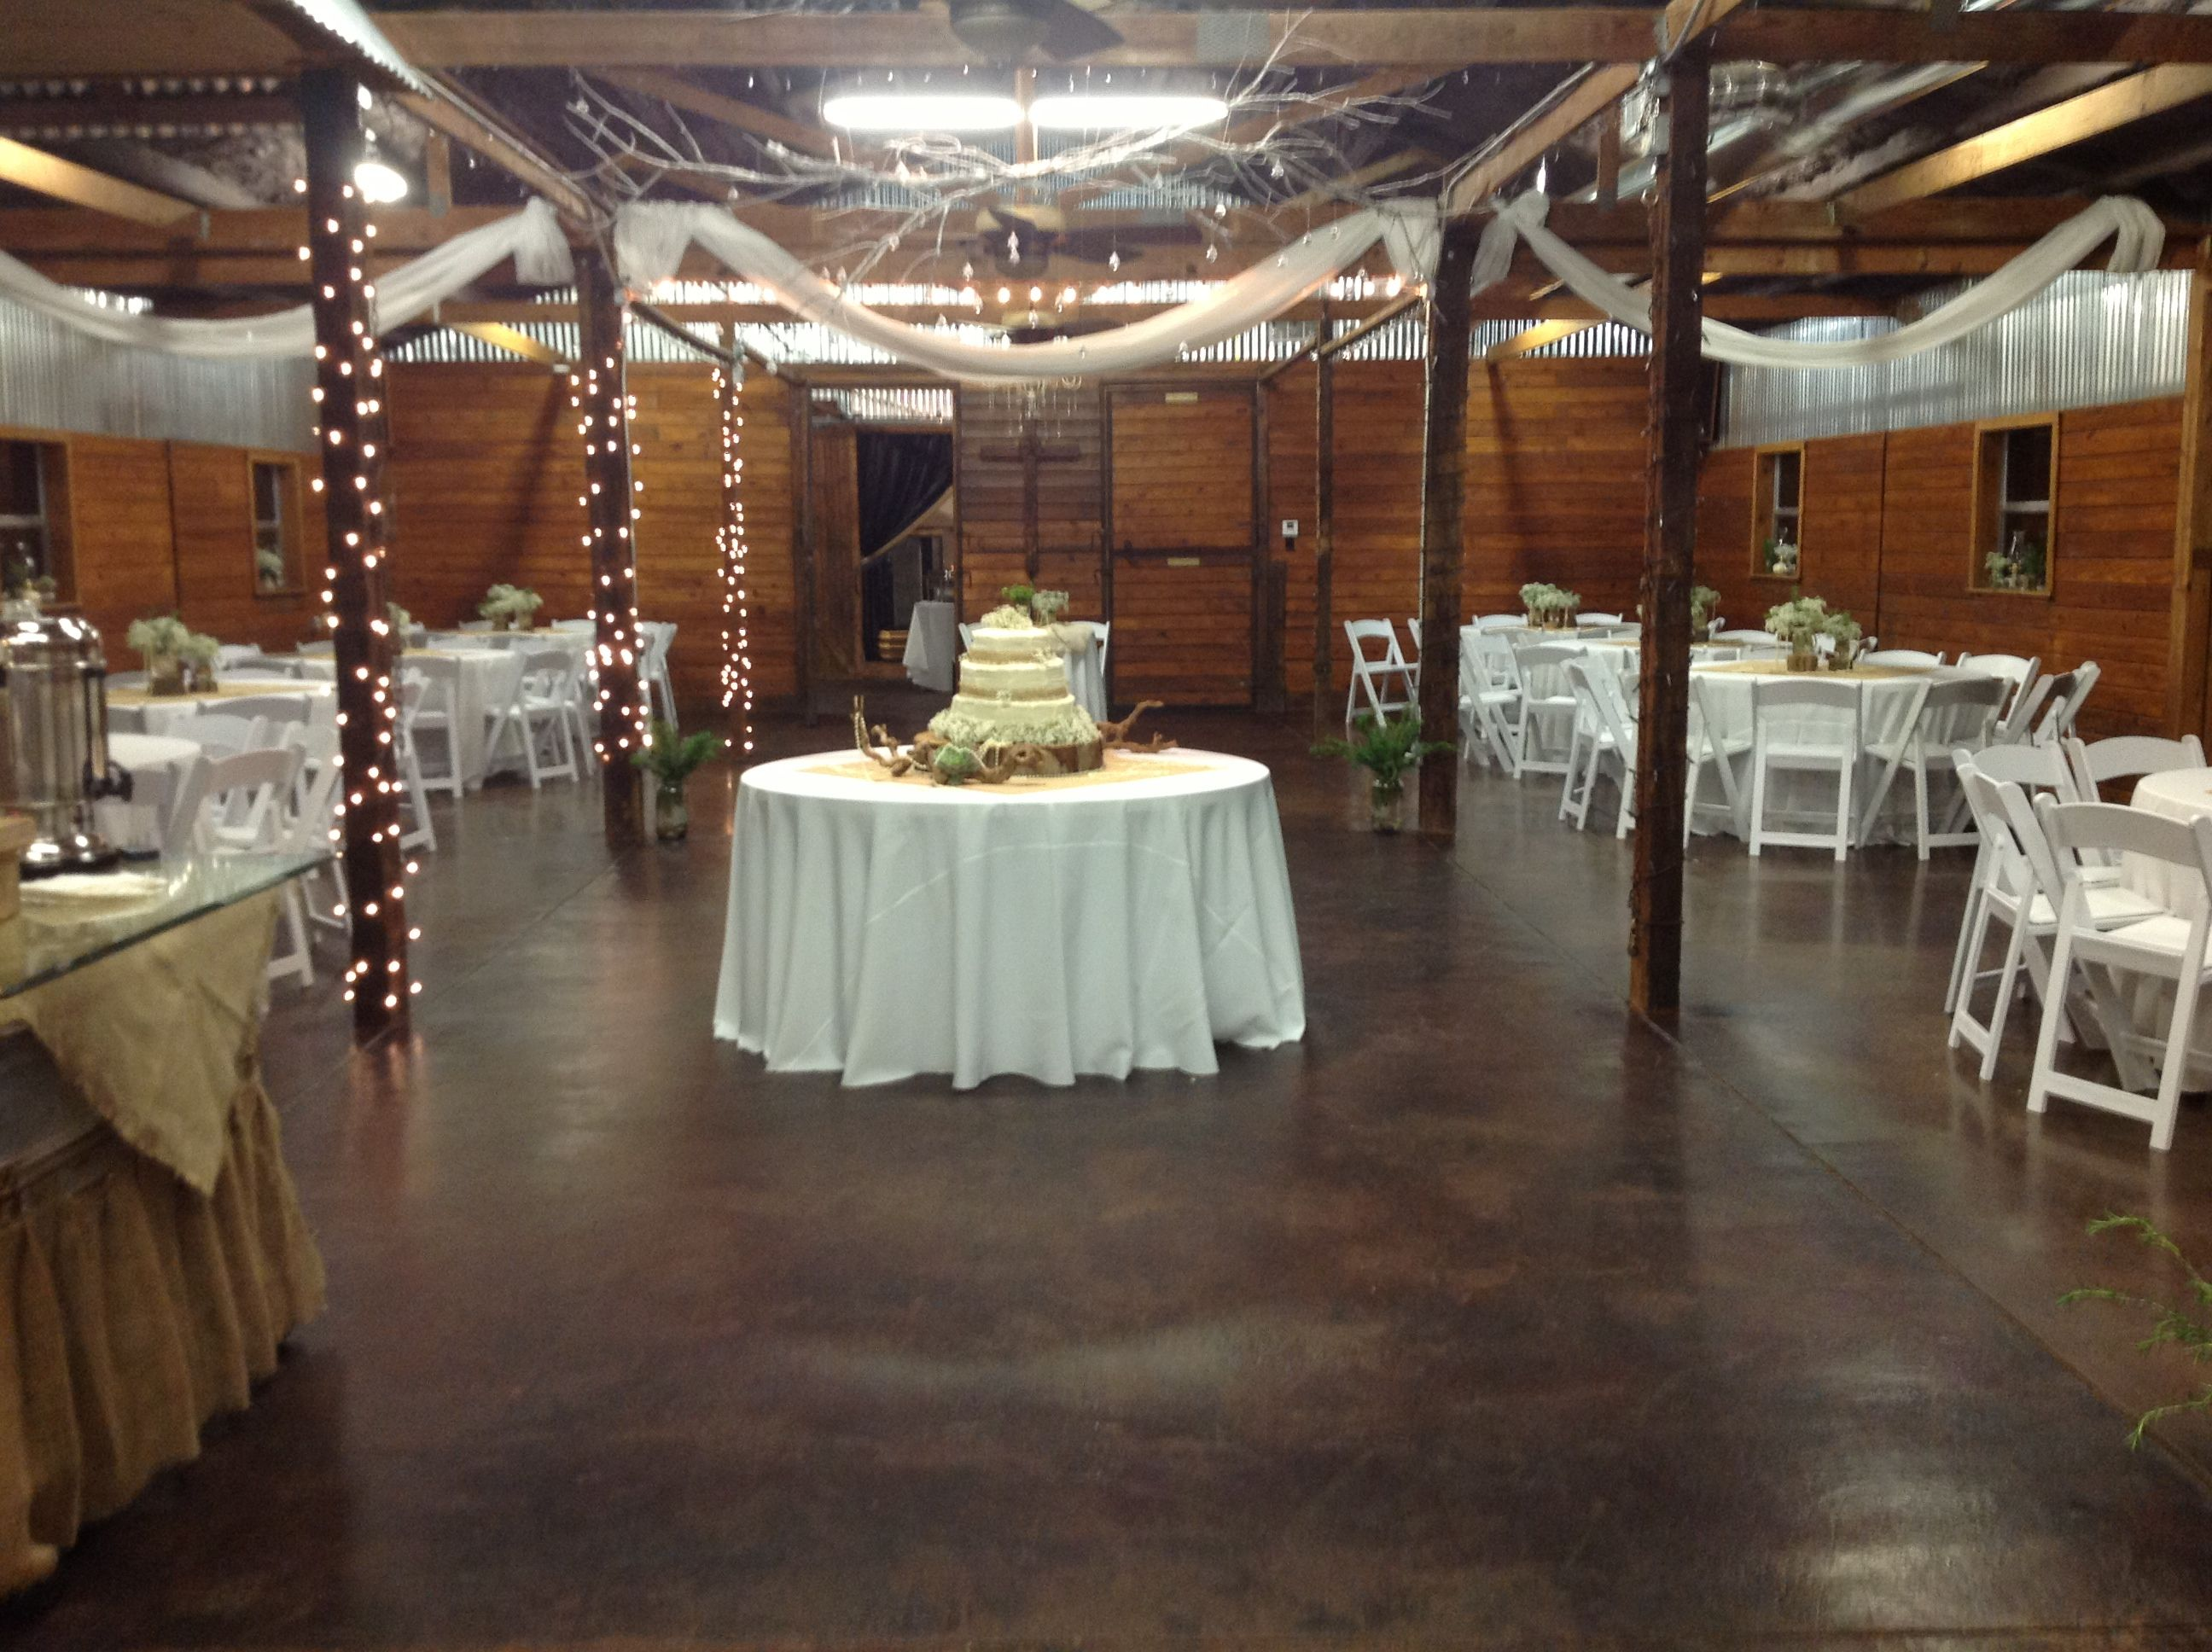 Barn Reception is so in style right now.  Intimate, unique warm setting.